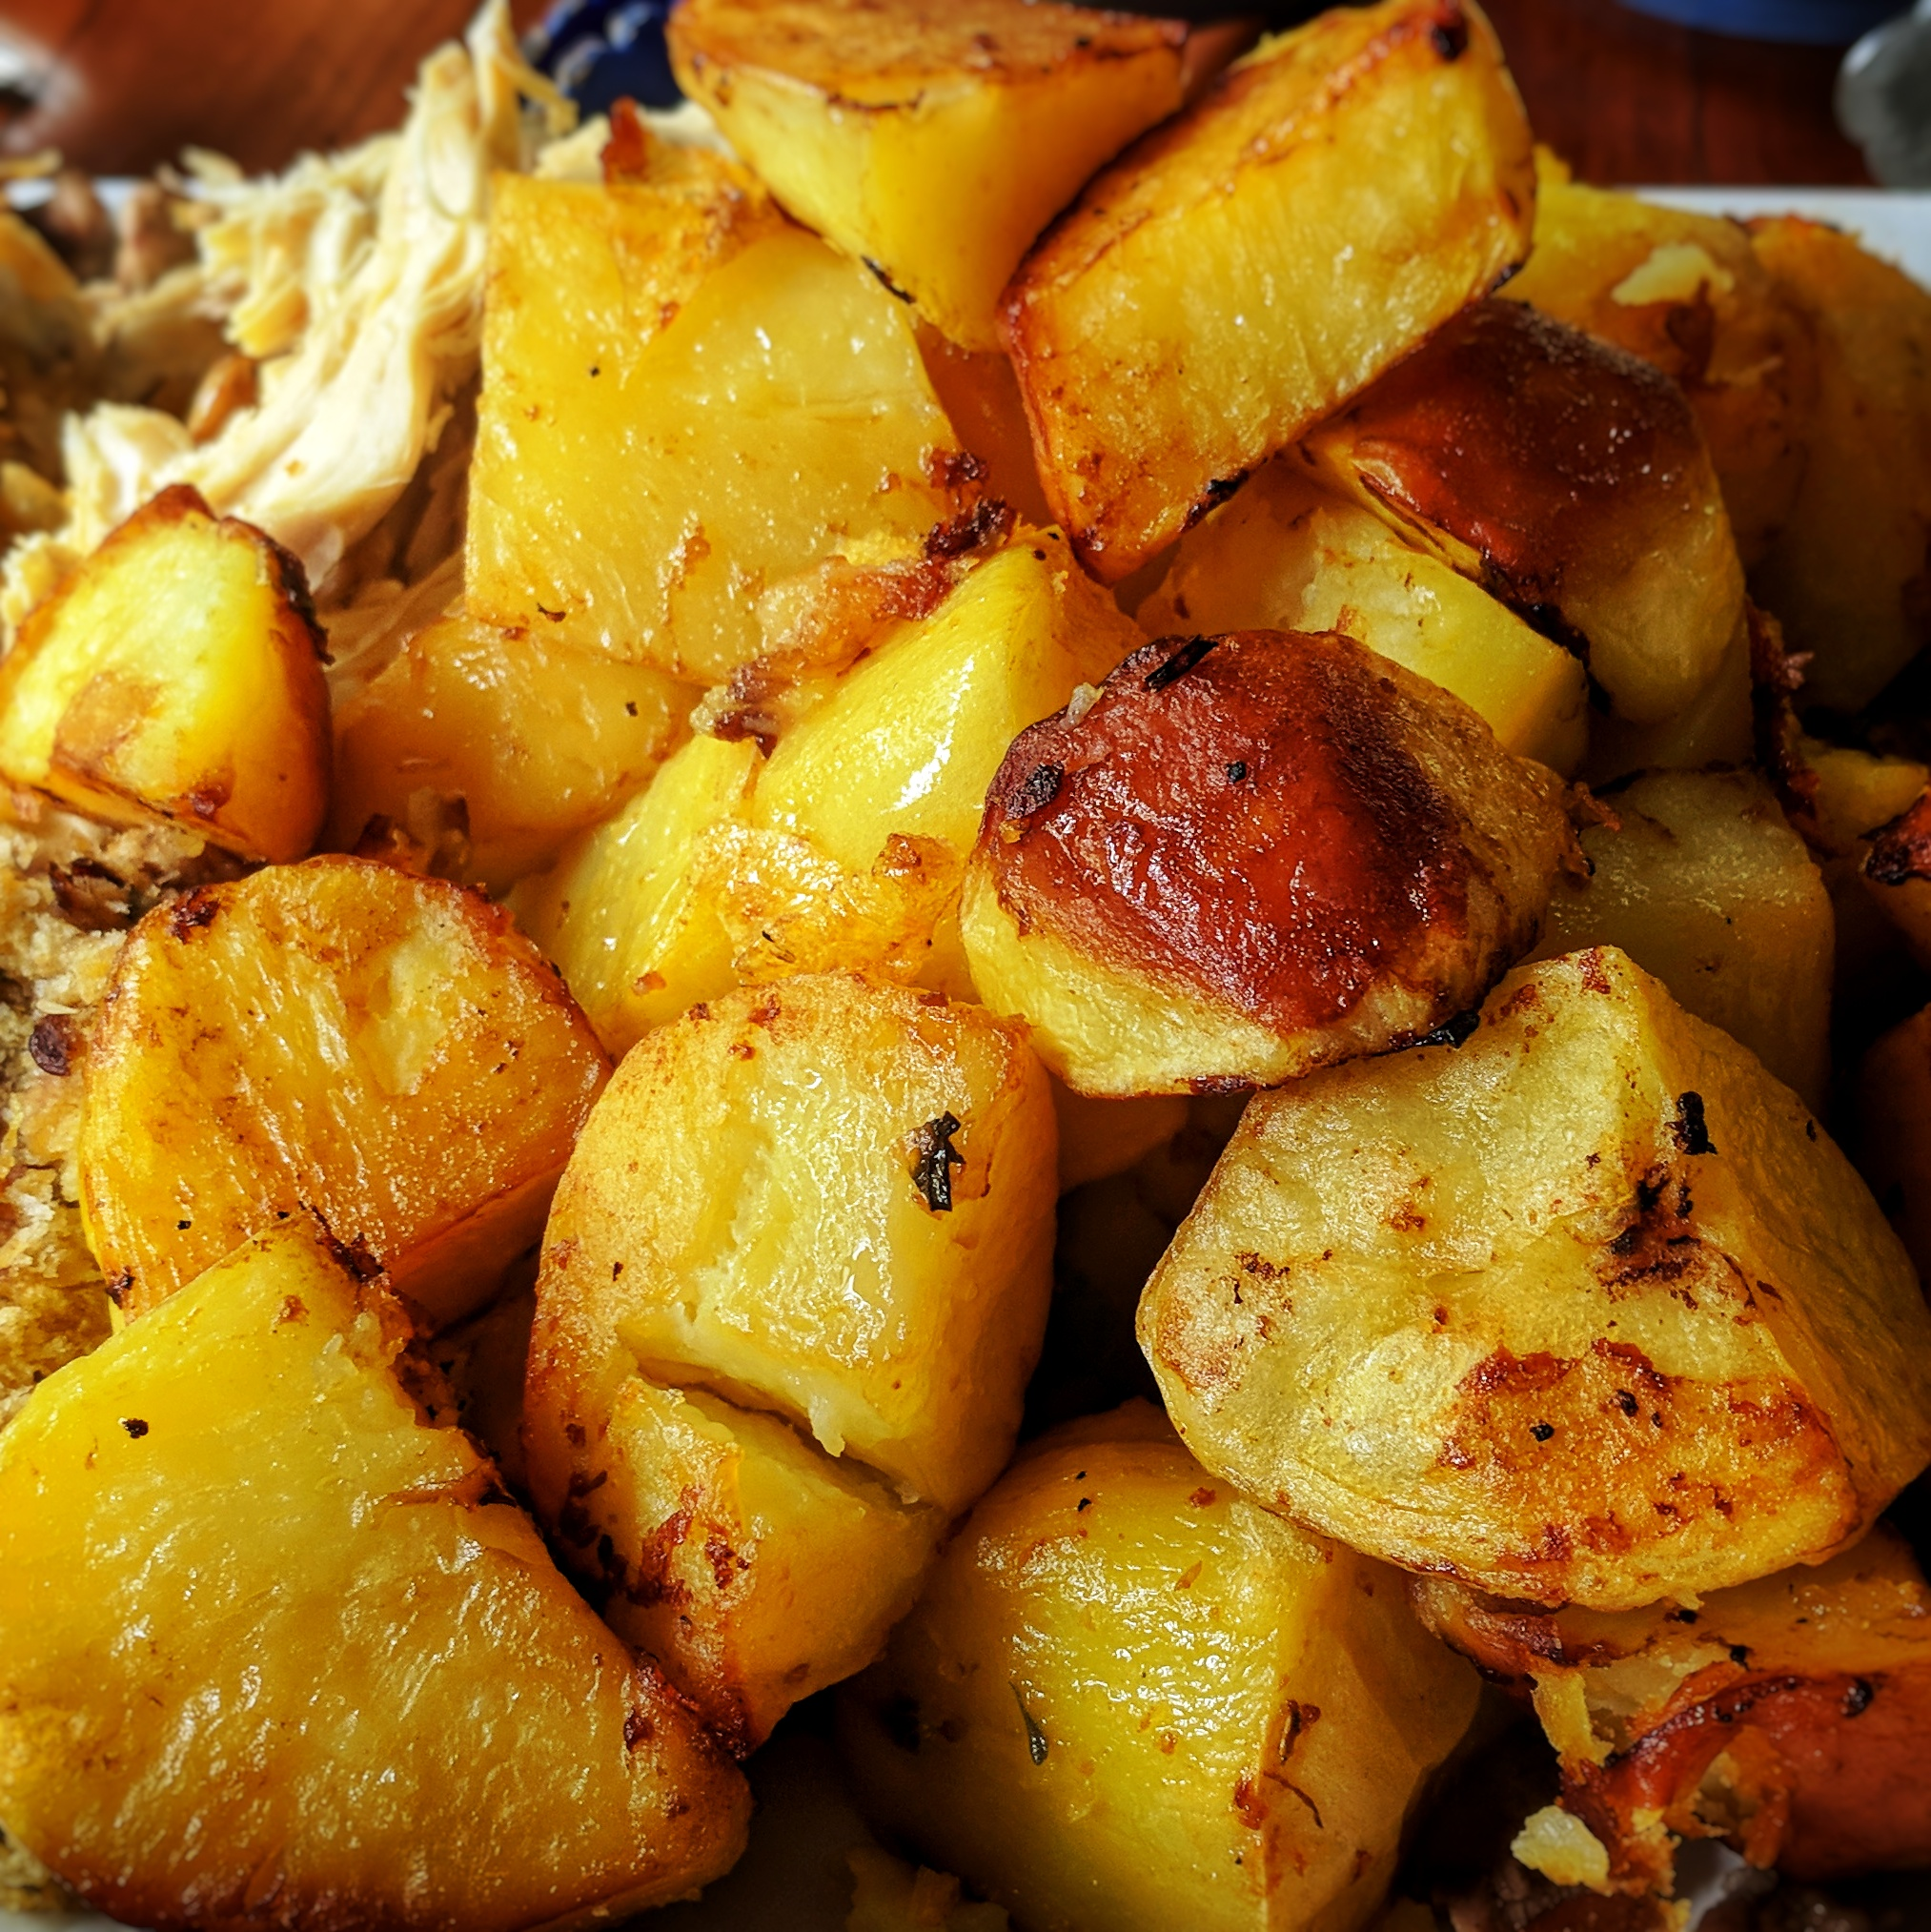 A dish of roast potatoes